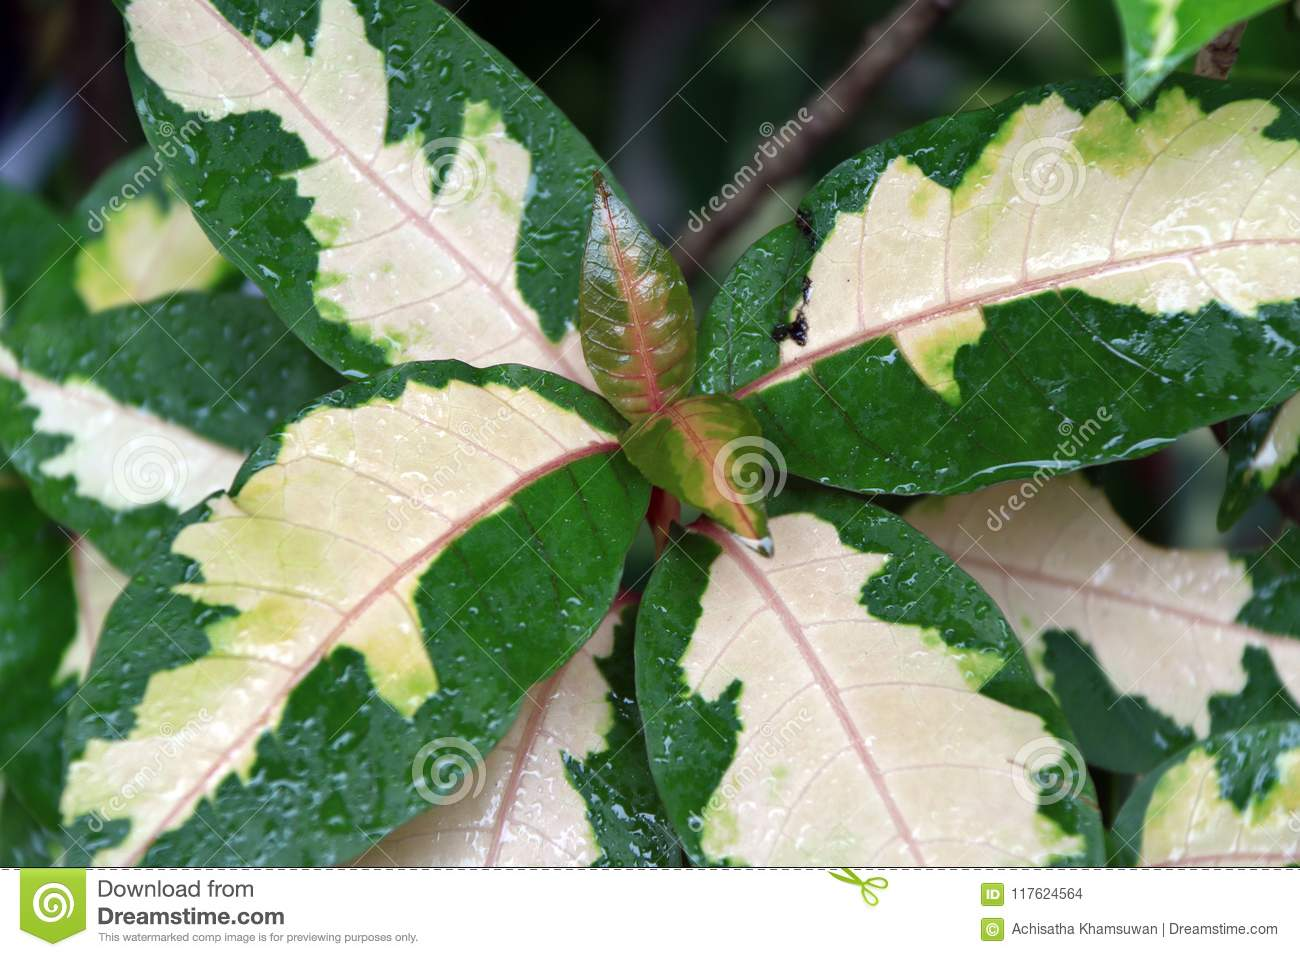 Green Leaf And The White Color On The Center And The Shape